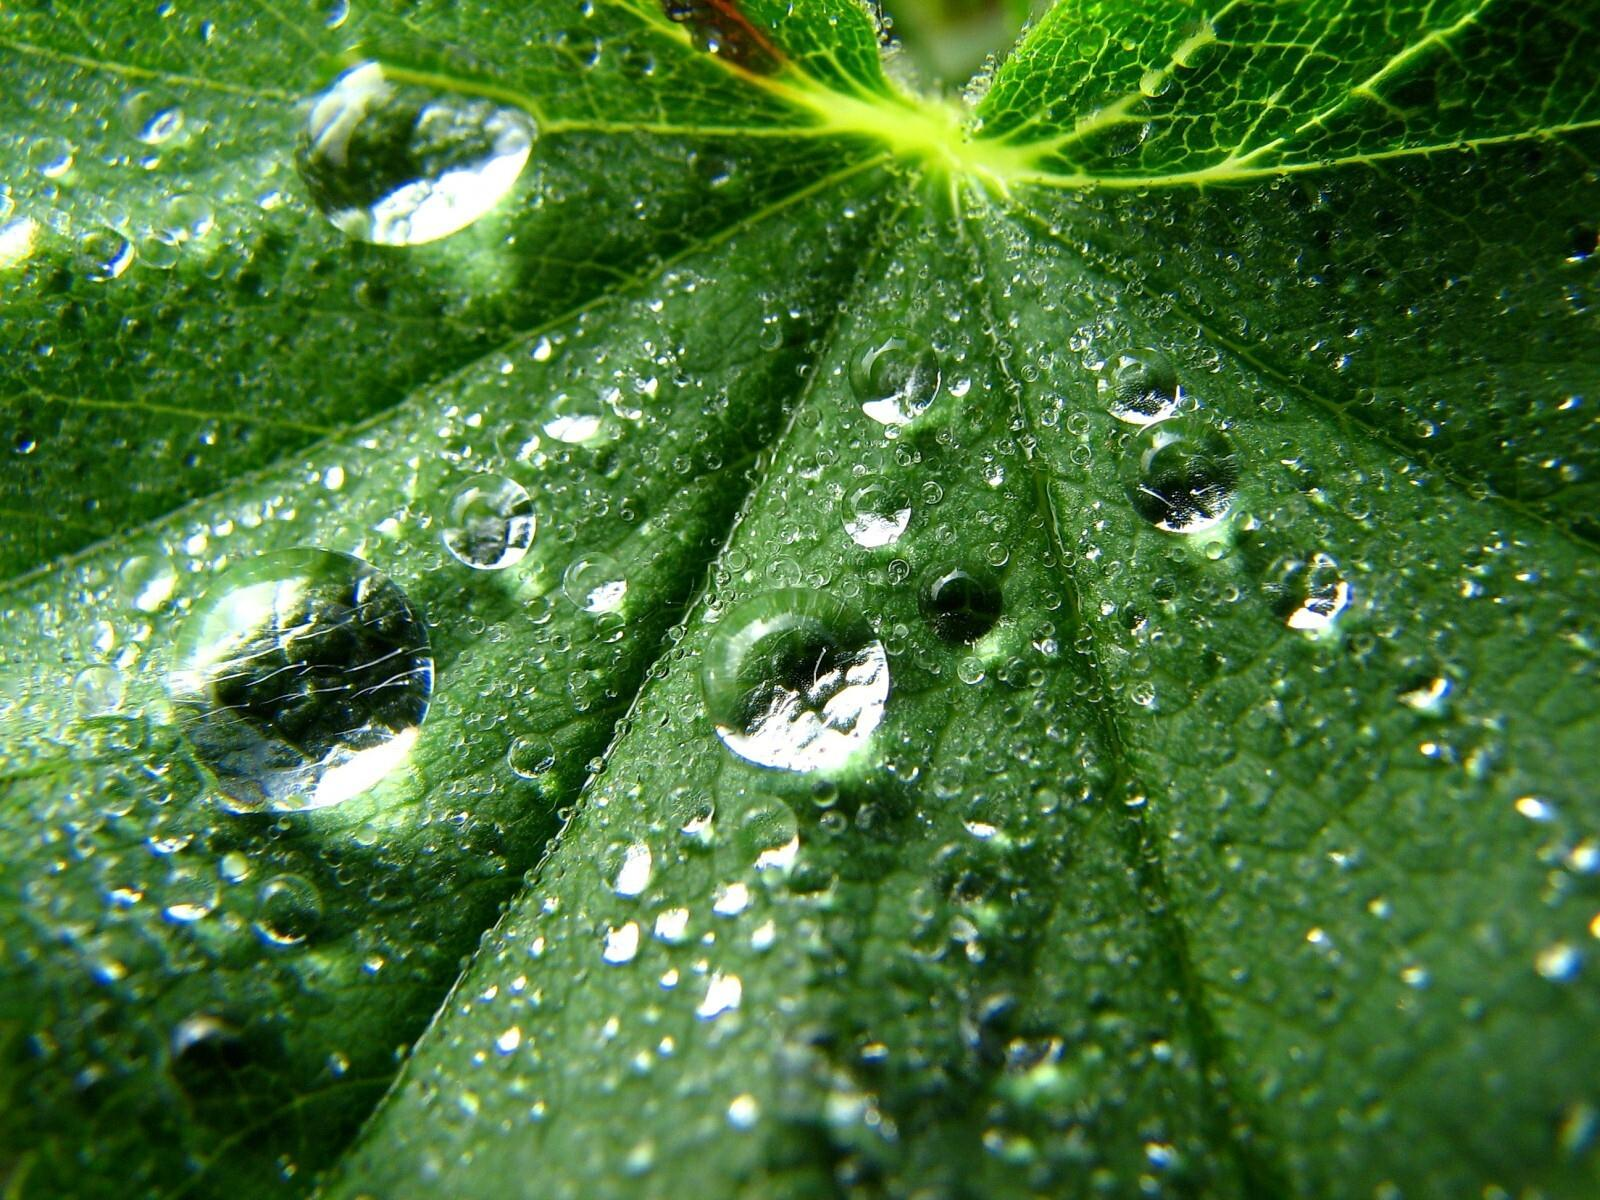 1600x1200 Water Drops on Leaf 3D Pic